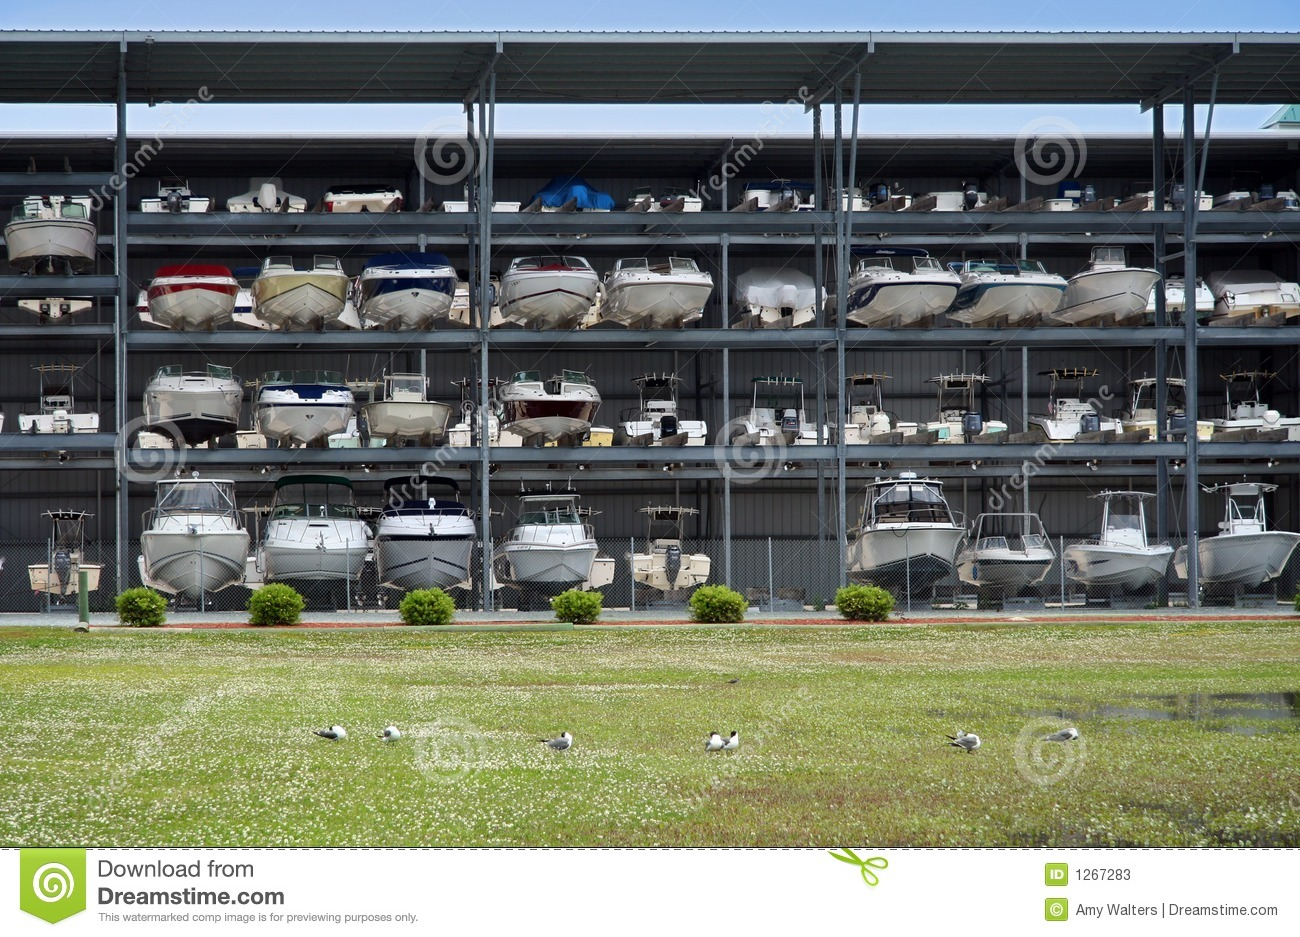 Central Air Conditioning Units Bing Images